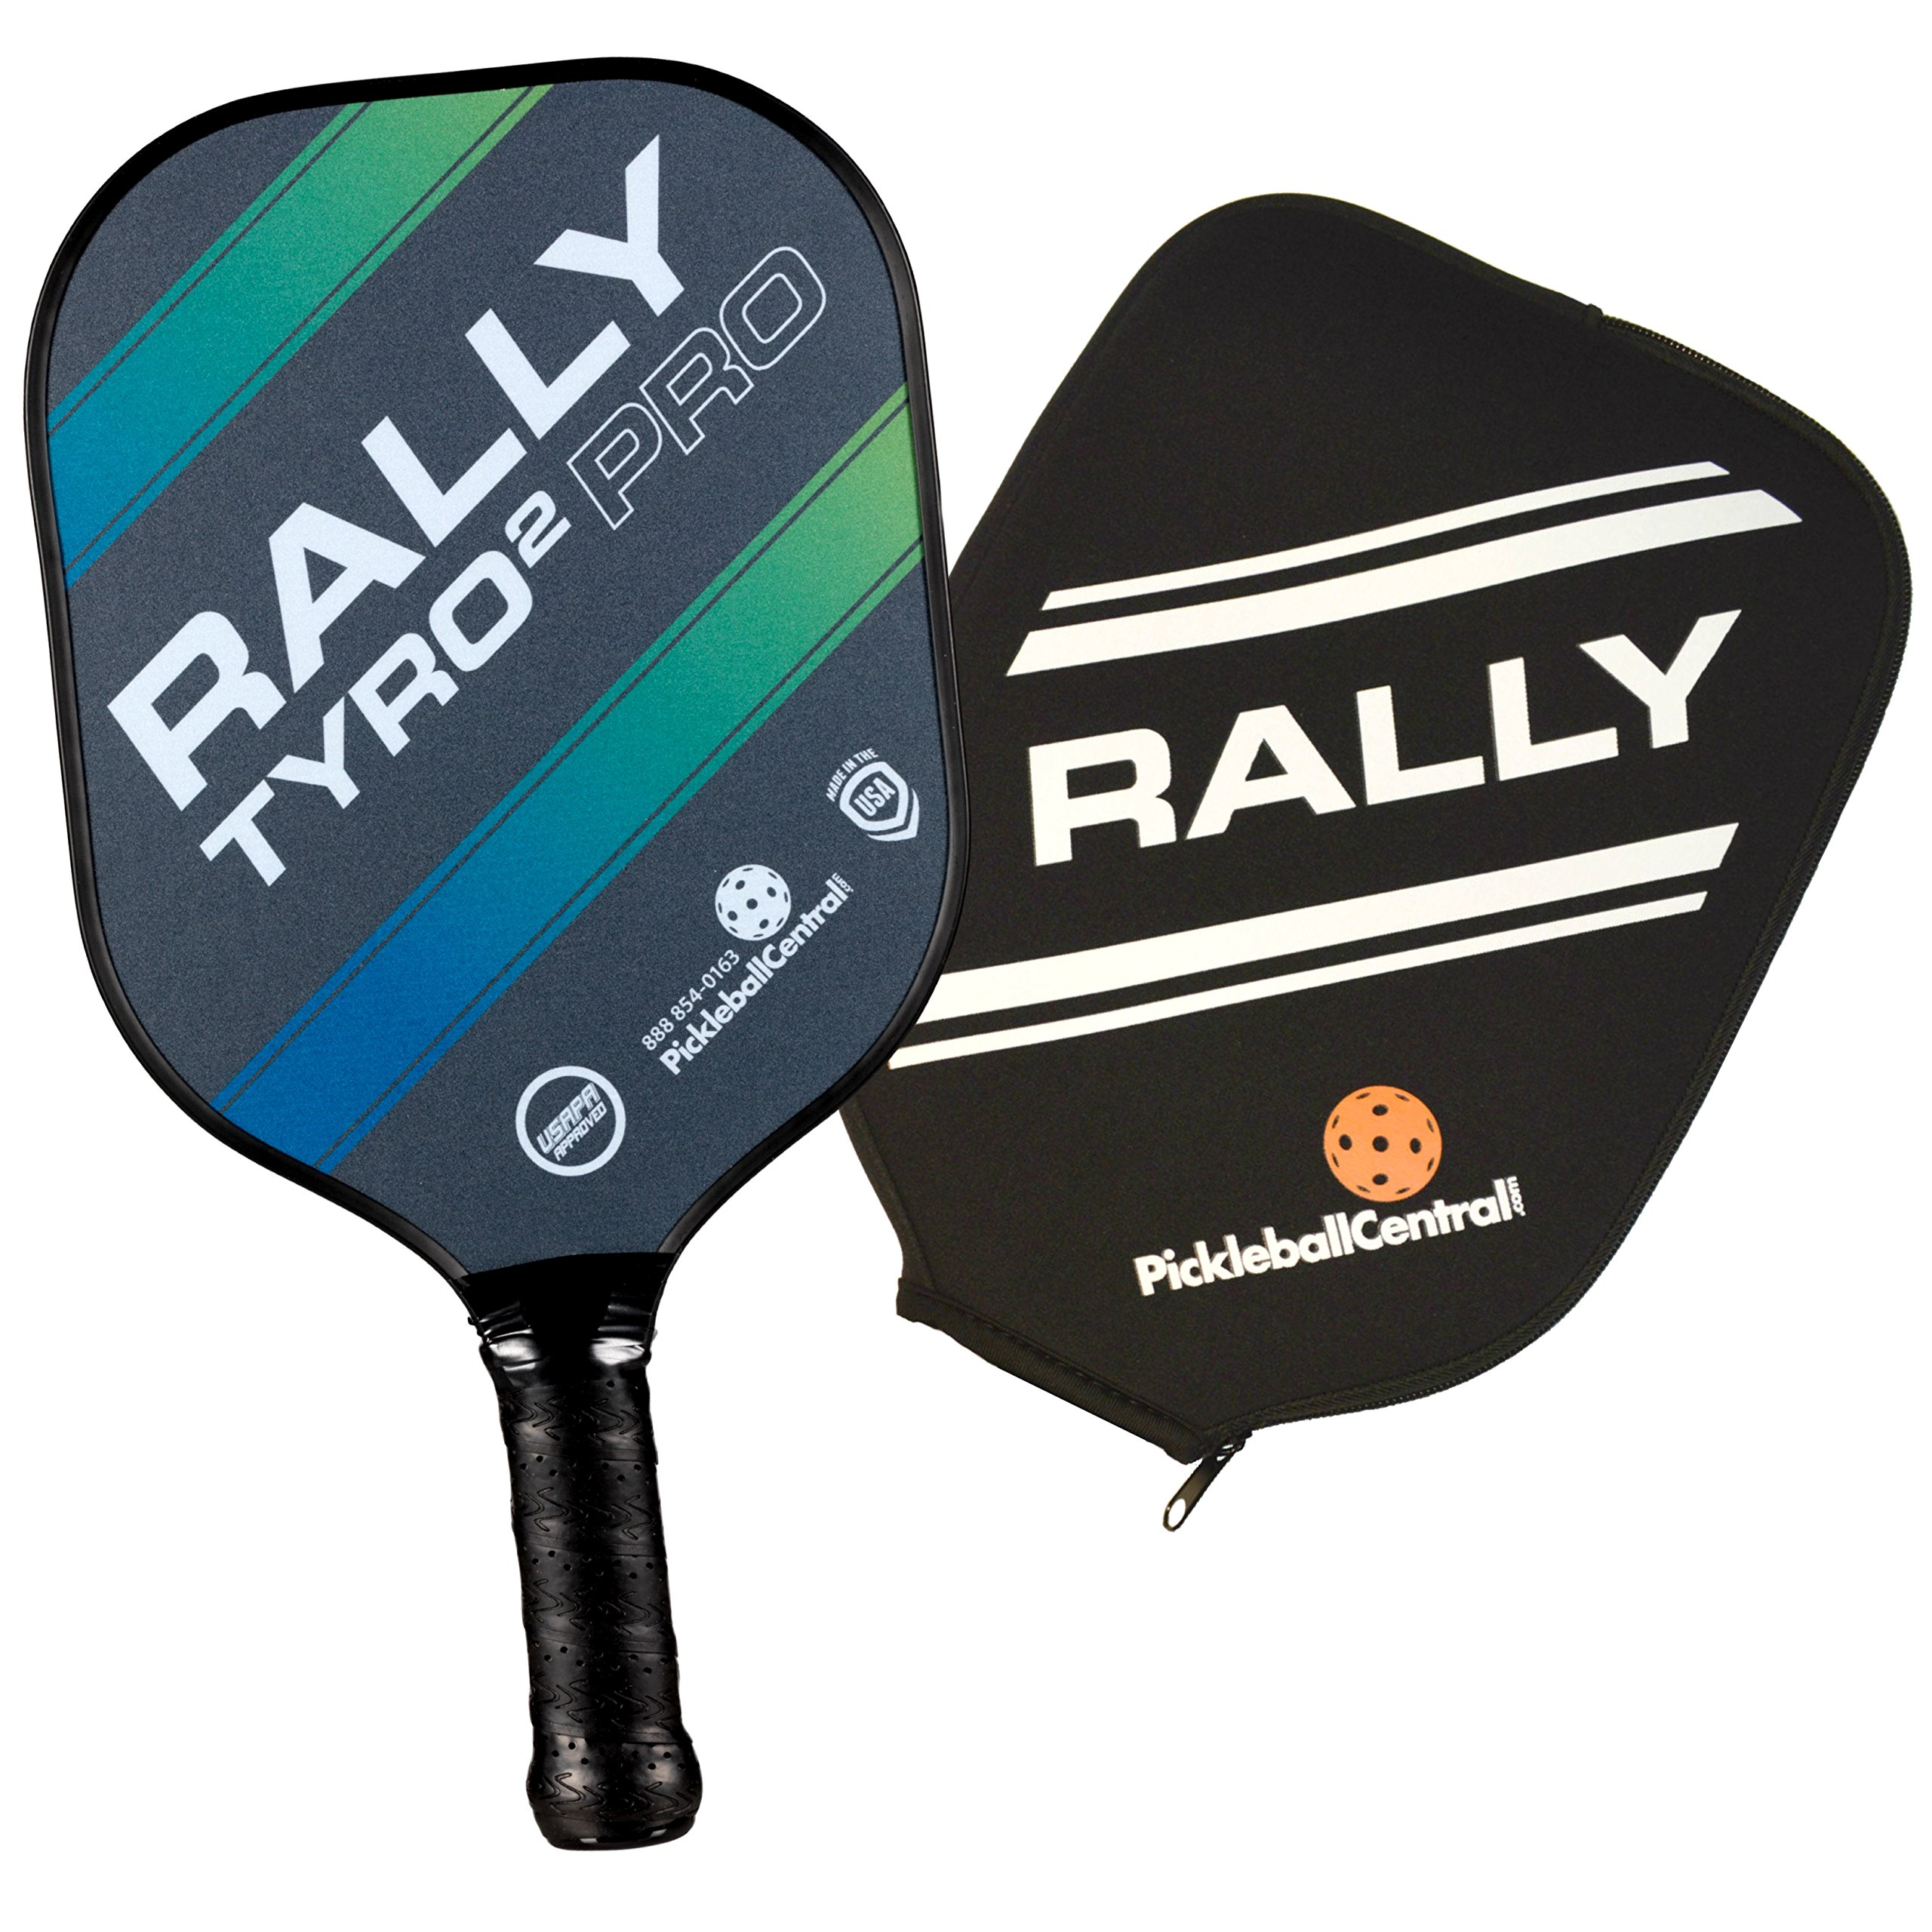 Rally Tyro 2 Pro Pickleball Paddle (1 Paddle/Cover - Ocean Blue) by PickleballCentral (Image #1)